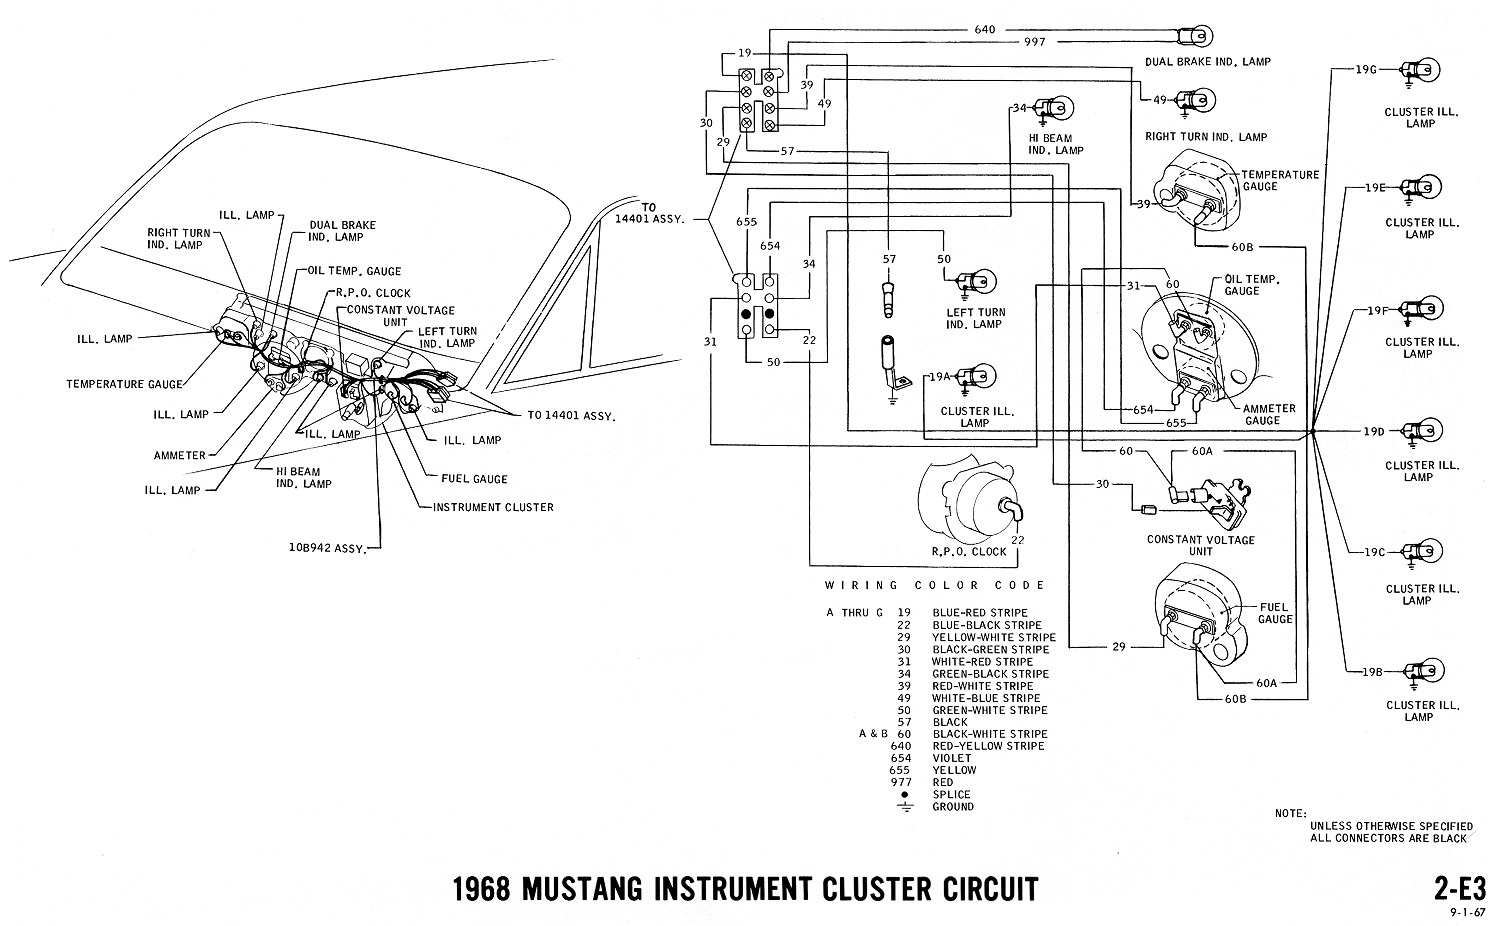 1968 mustang wiring diagram instruments 1968 mustang wiring diagrams and vacuum schematics average joe 1967 mustang wiring diagram at gsmportal.co